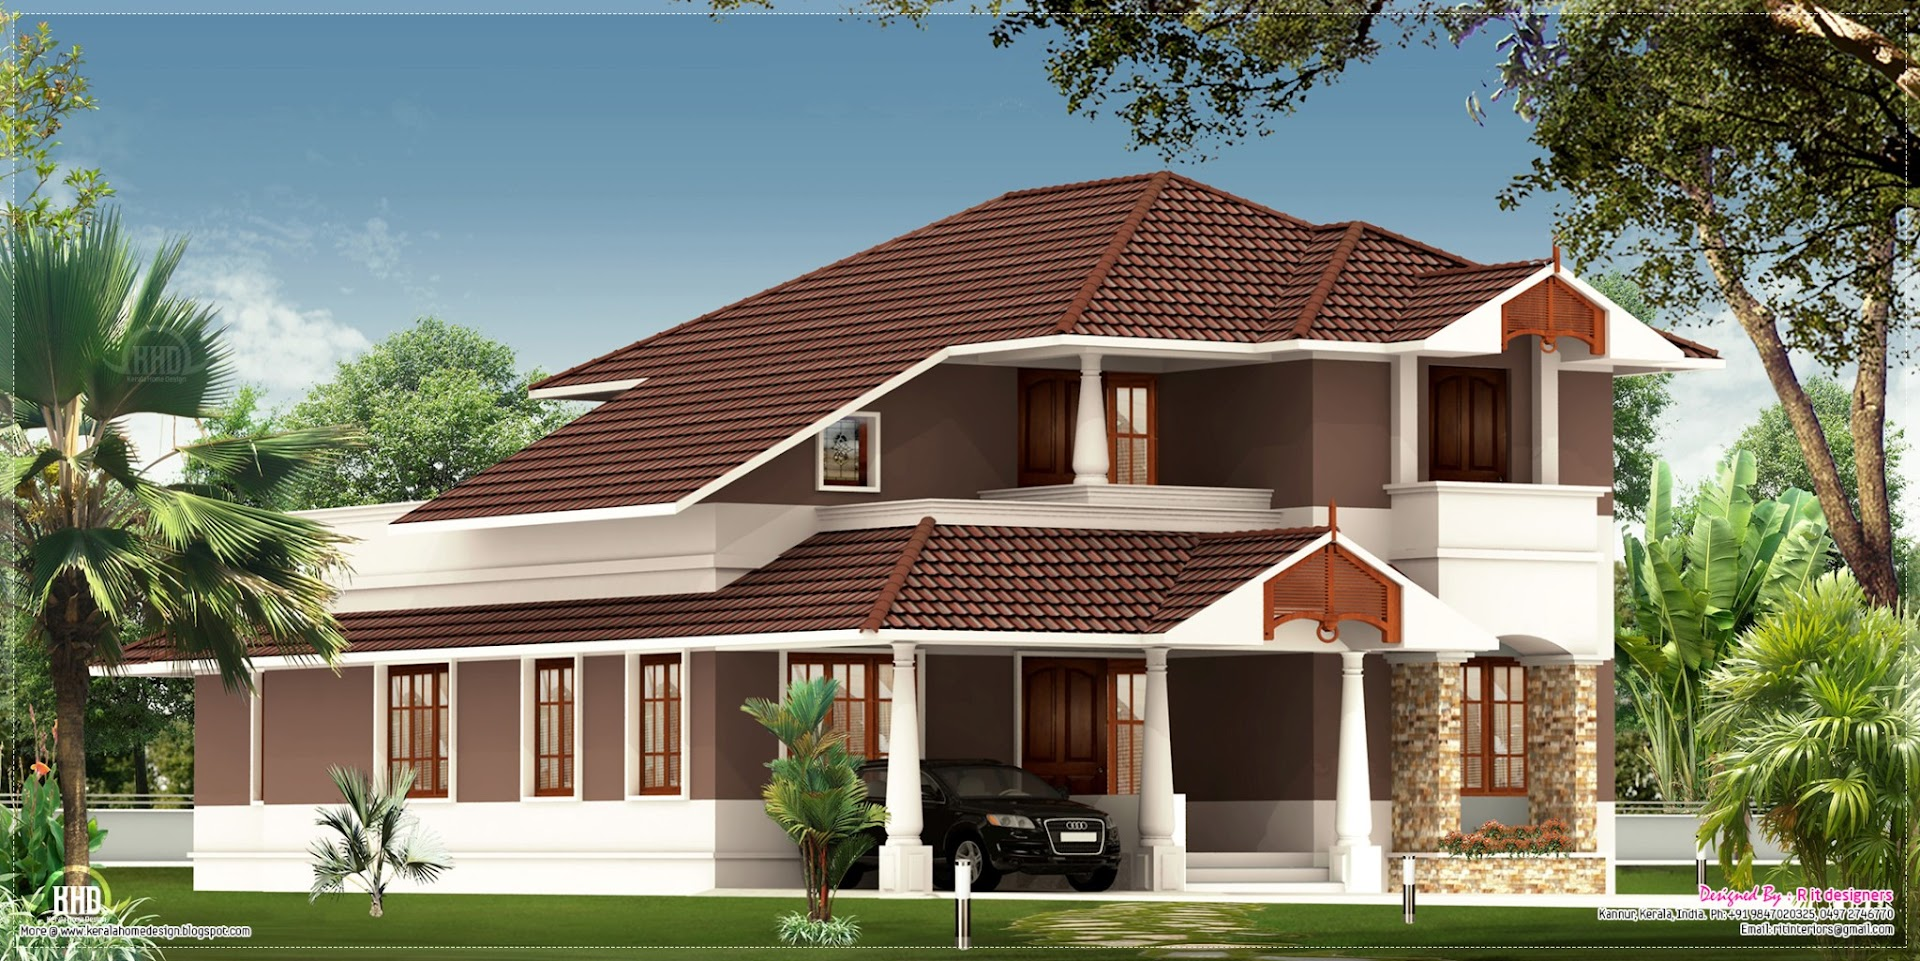 2100 House Exterior Design Kerala Home Design And Floor Plans